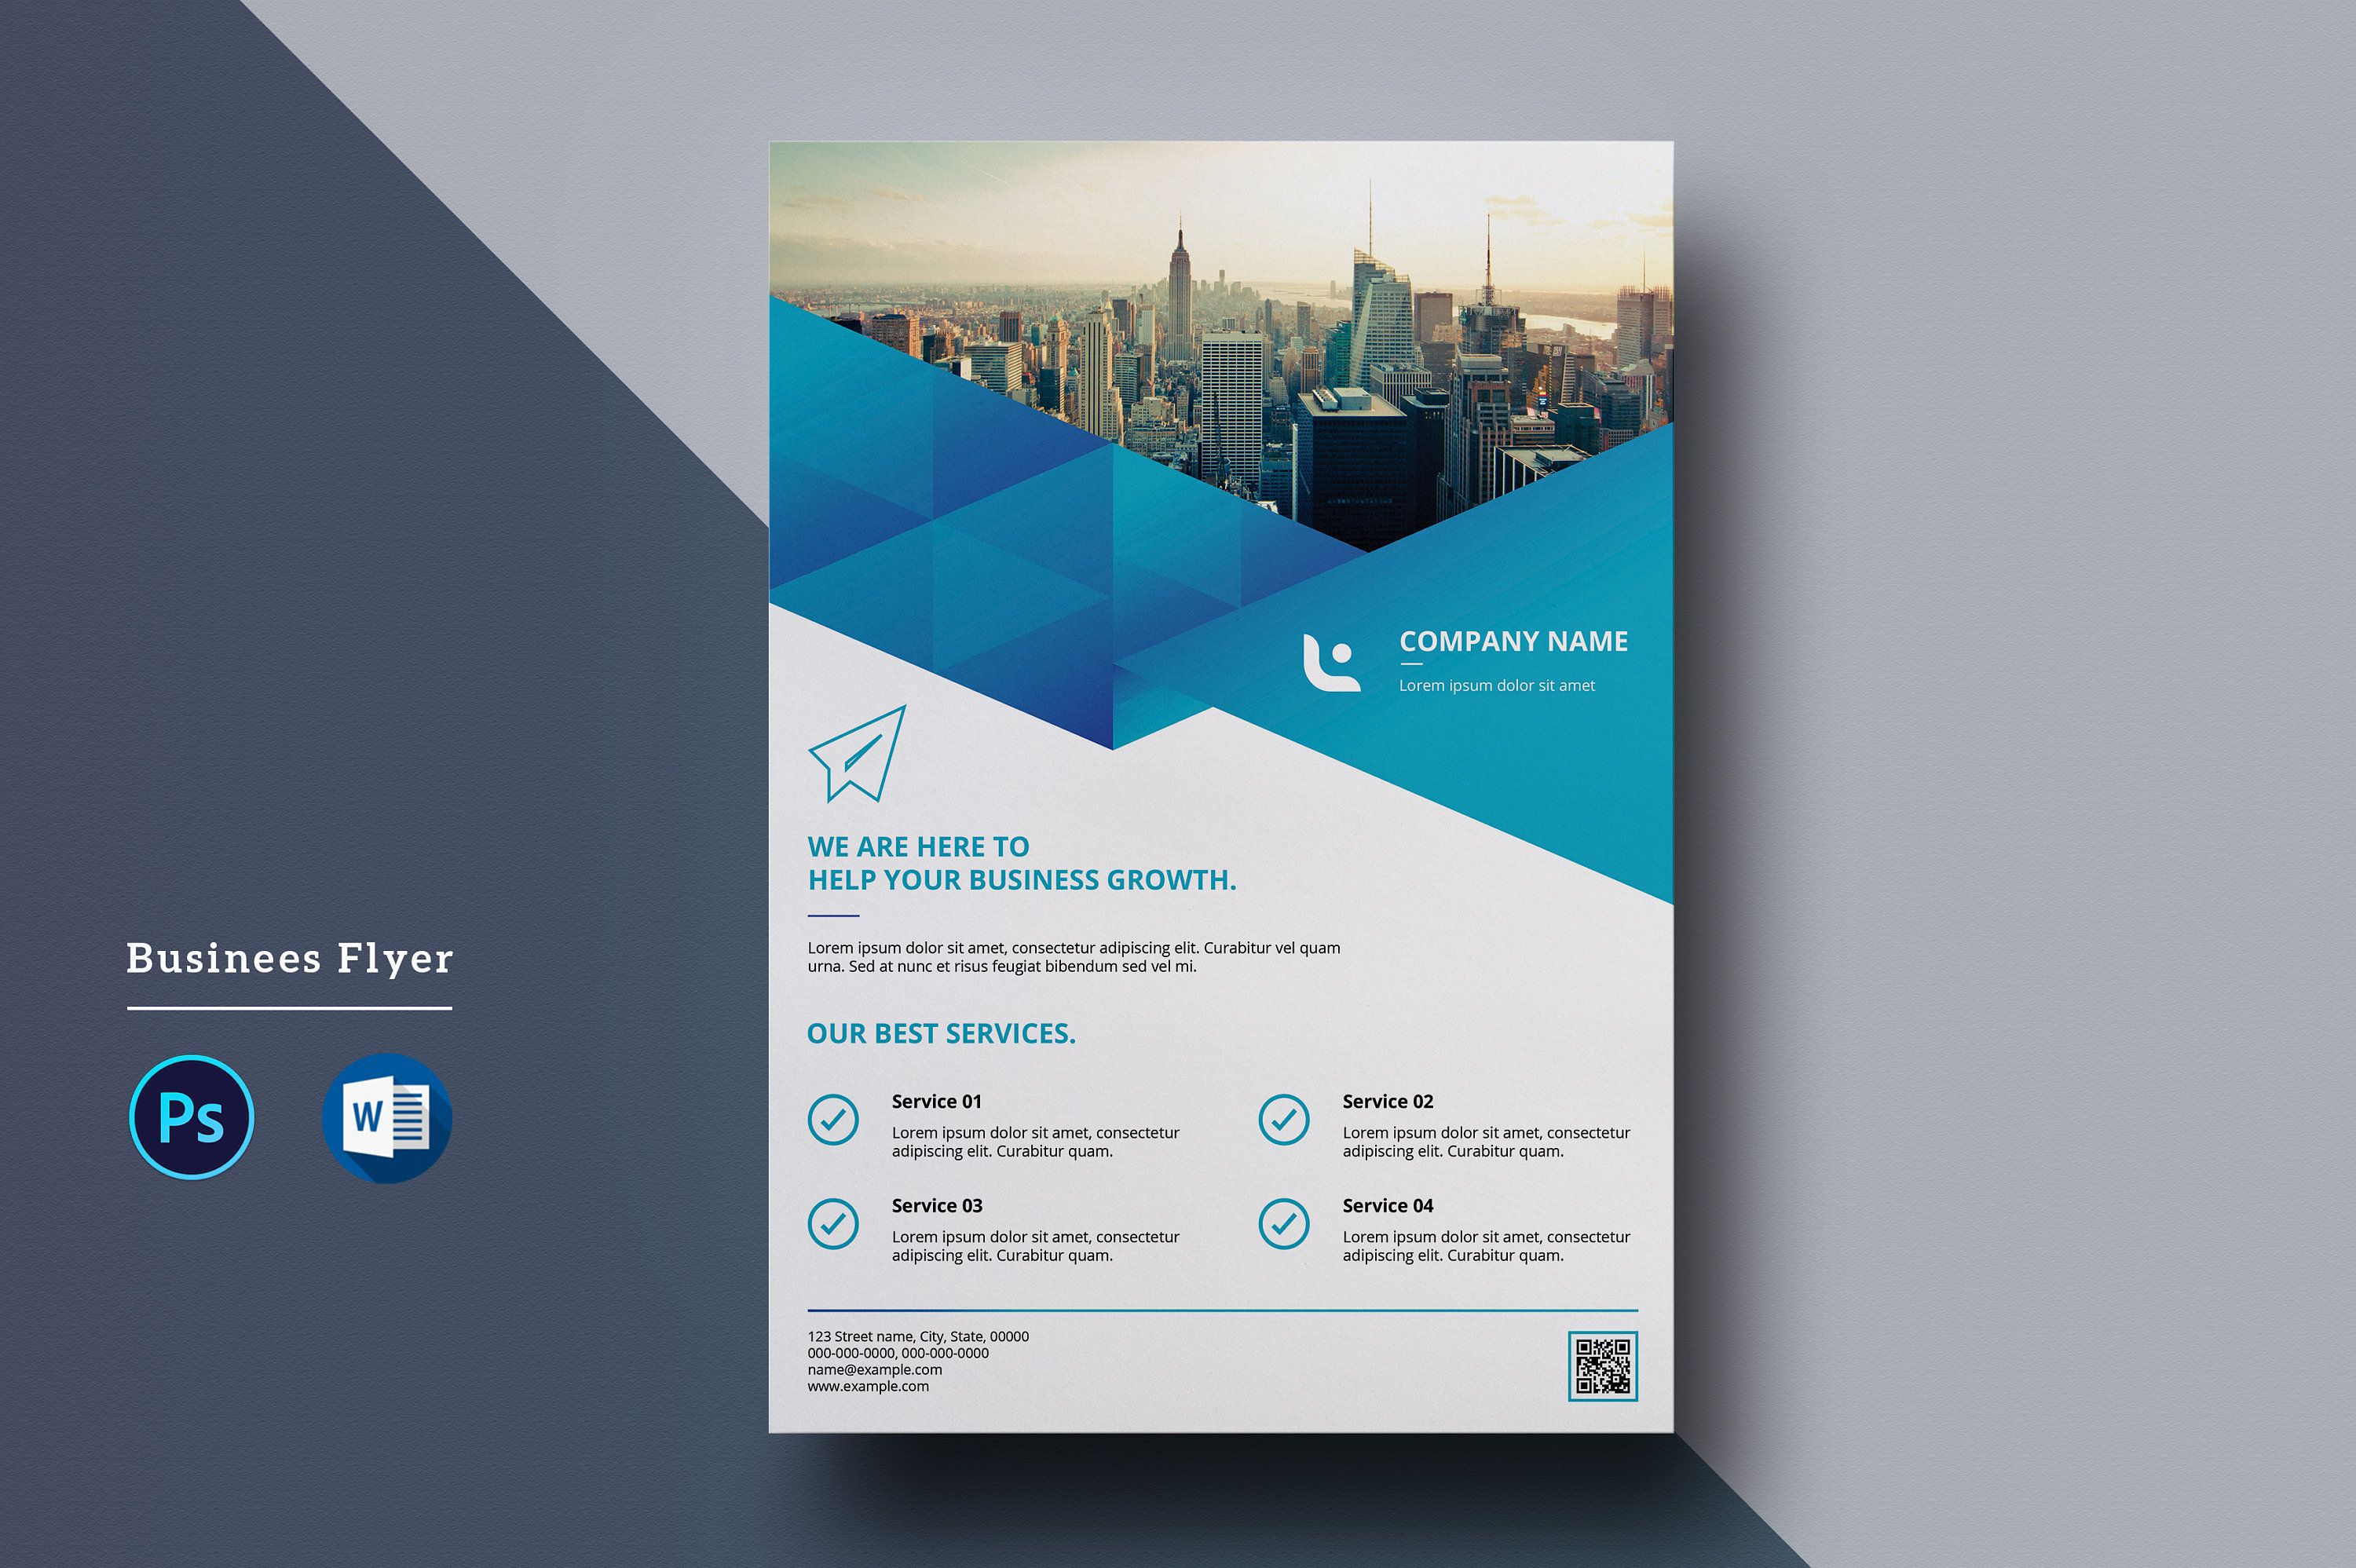 002 Surprising M Word Brochure Template Free Download High Definition  Microsoft 2007Full